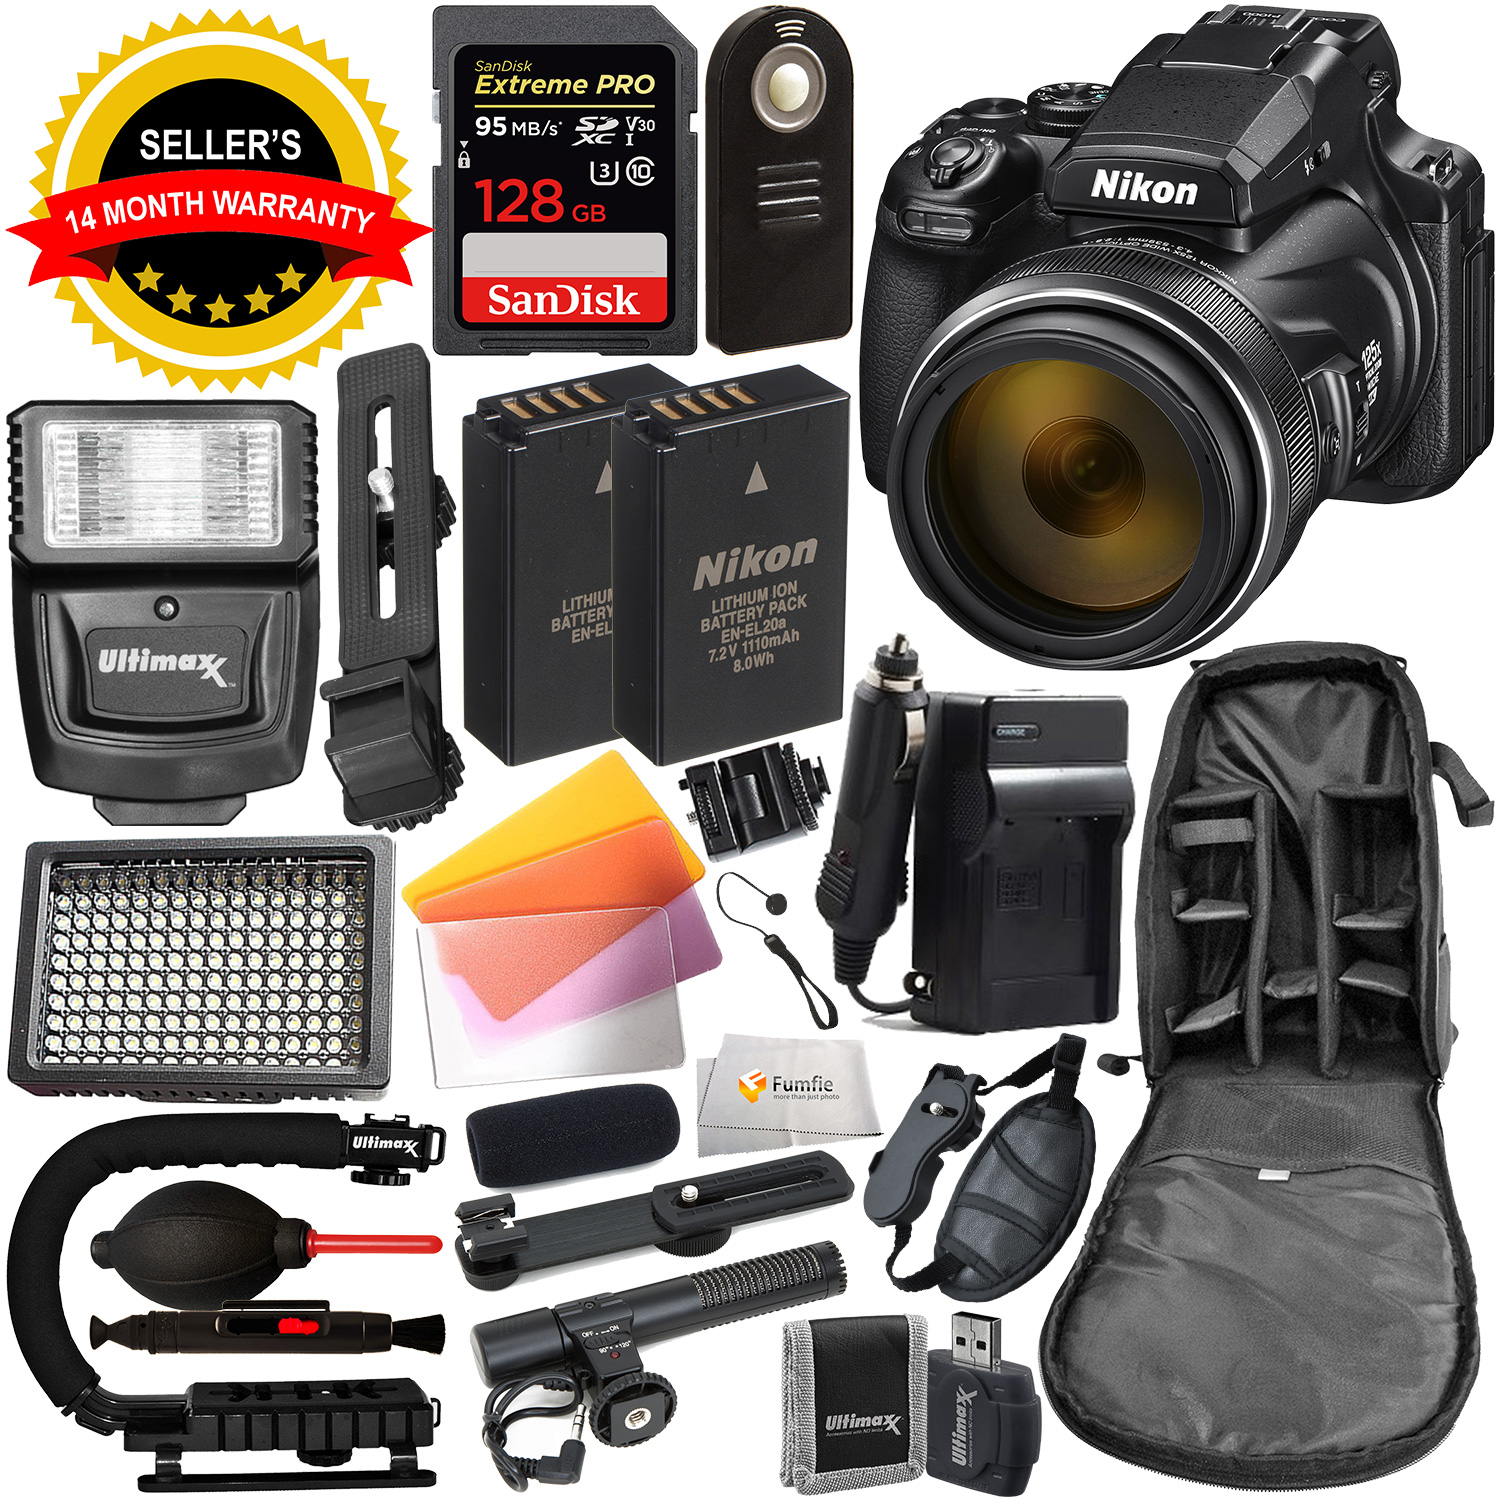 Nikon COOLPIX P1000 Digital Camera with Deluxe Accessory Bundle - Includes: SanDisk Extreme PRO 128GB SDXC UHS-I Memory Card, Extra Battery, Digital Slave Flash & MUCH MORE